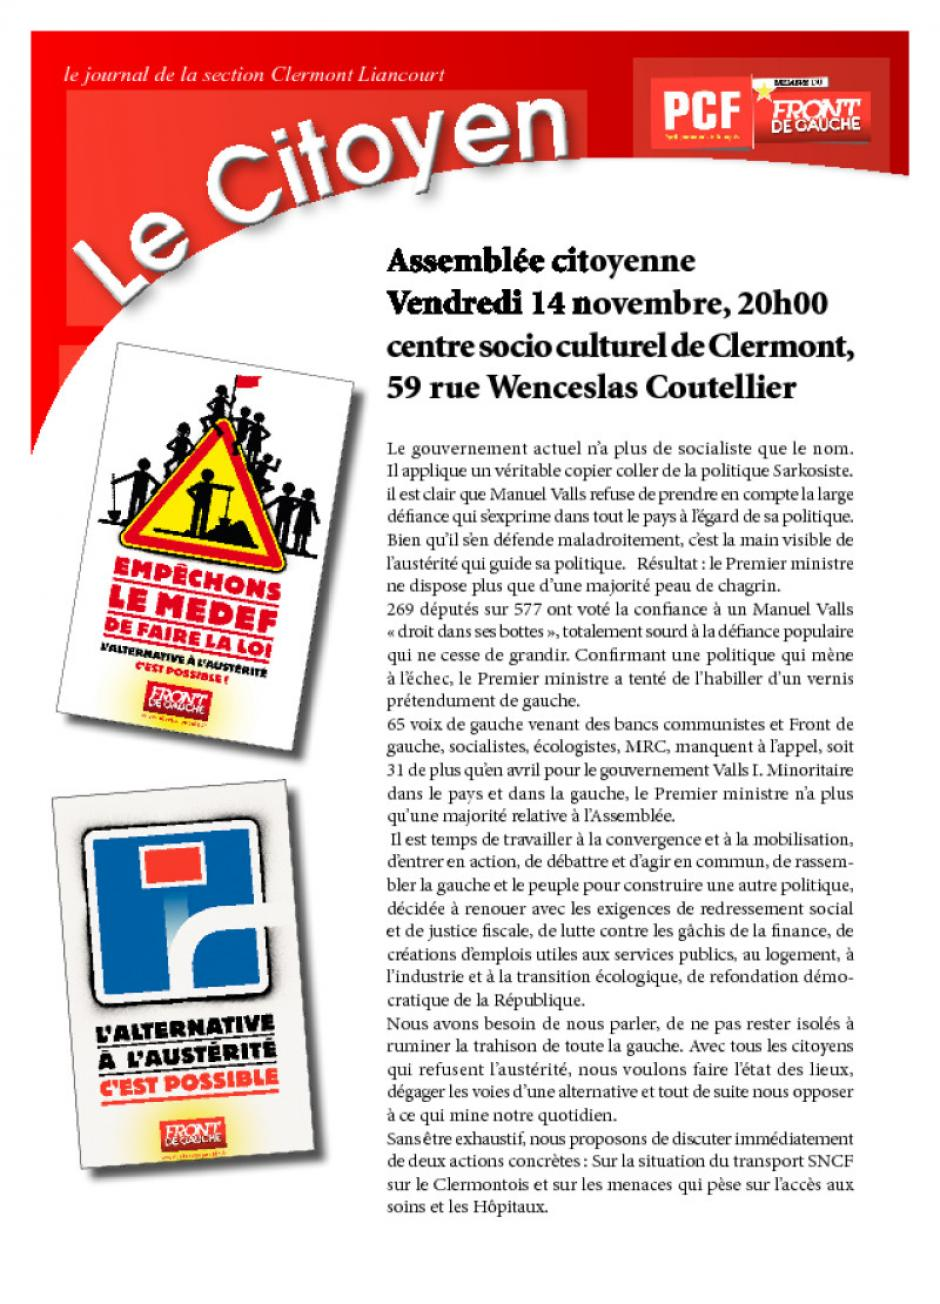 Journal « Le Citoyen » - Section PCF de Clermont-Liancourt, novembre 2014